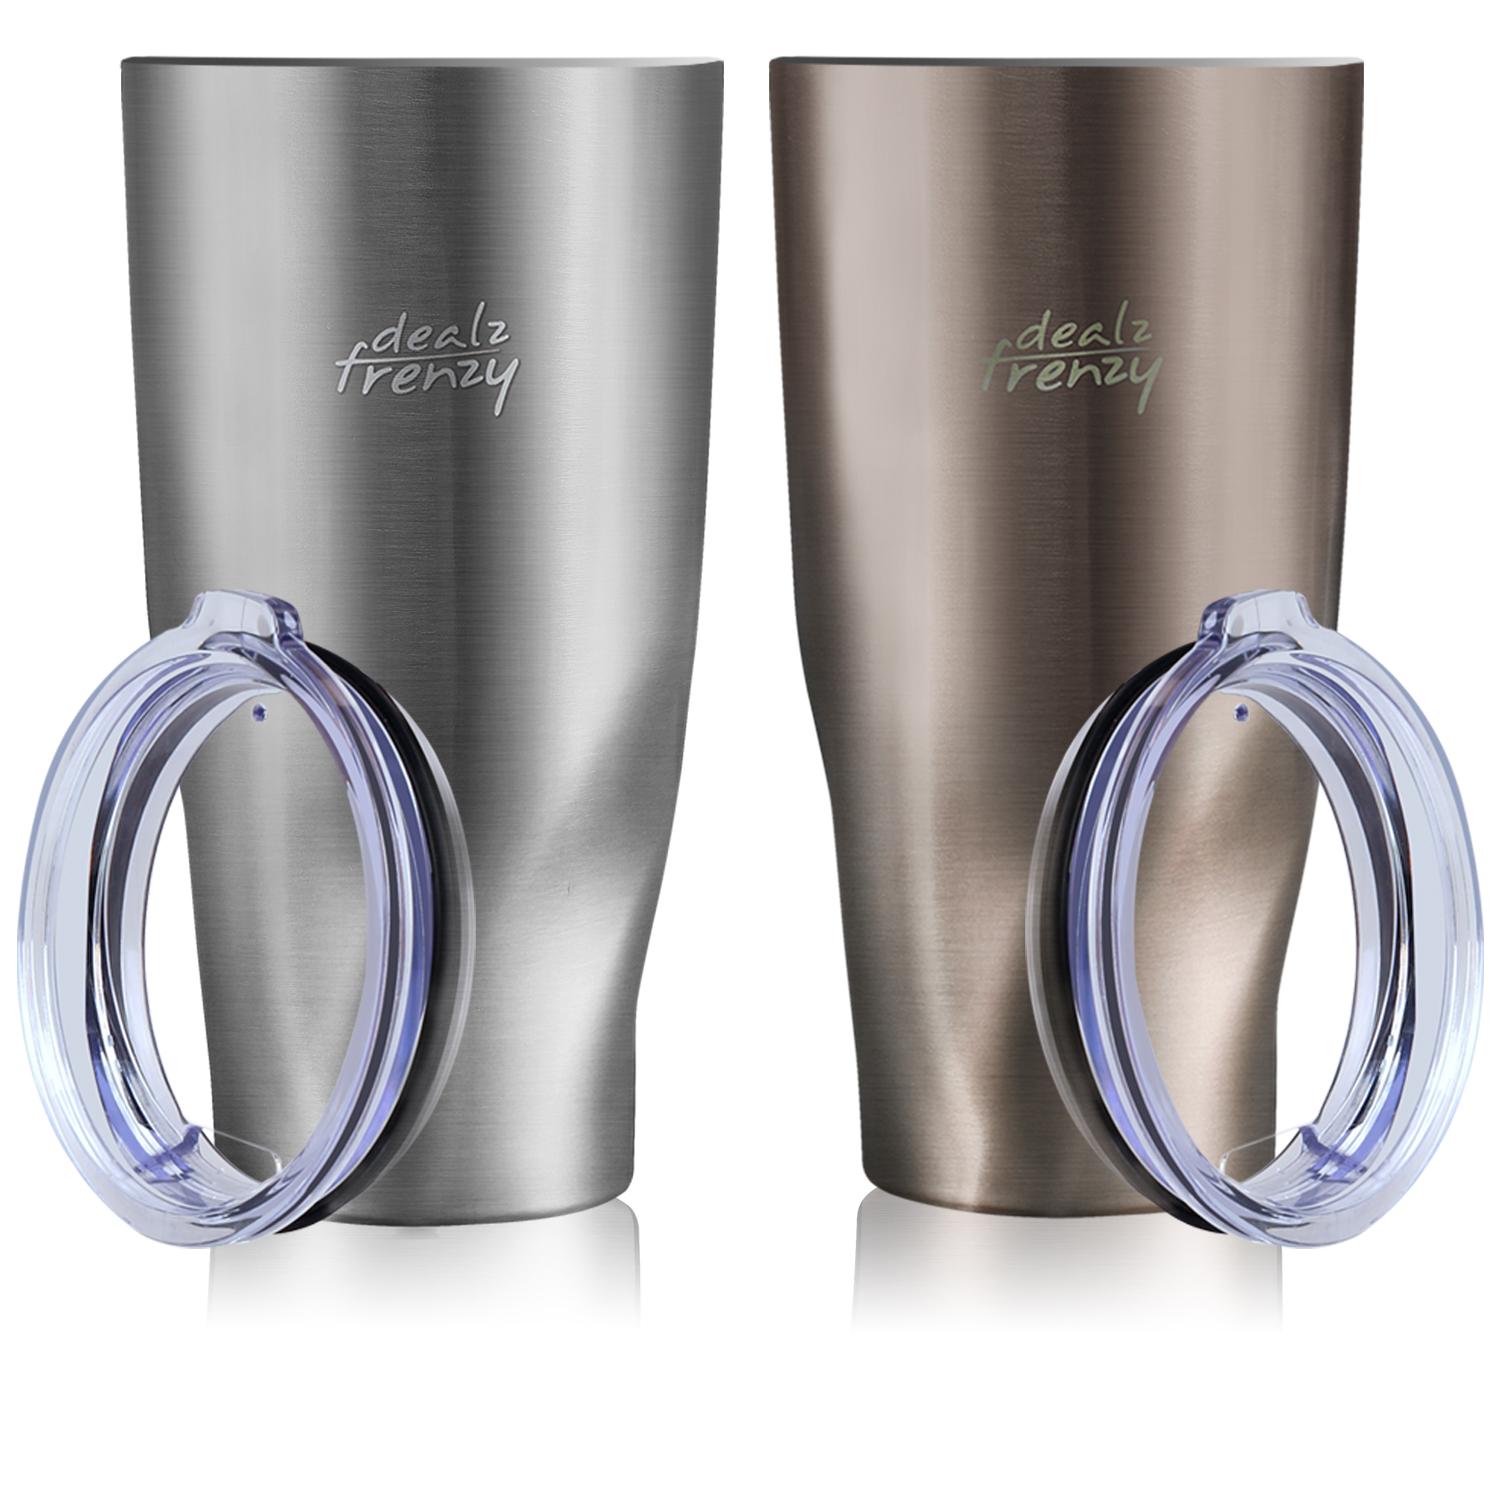 279b86b31d3 Winter Deals ! Double Wall Stainless Steel Wide Mouth Coffee Thermos Cup  with Lid, just $16.99